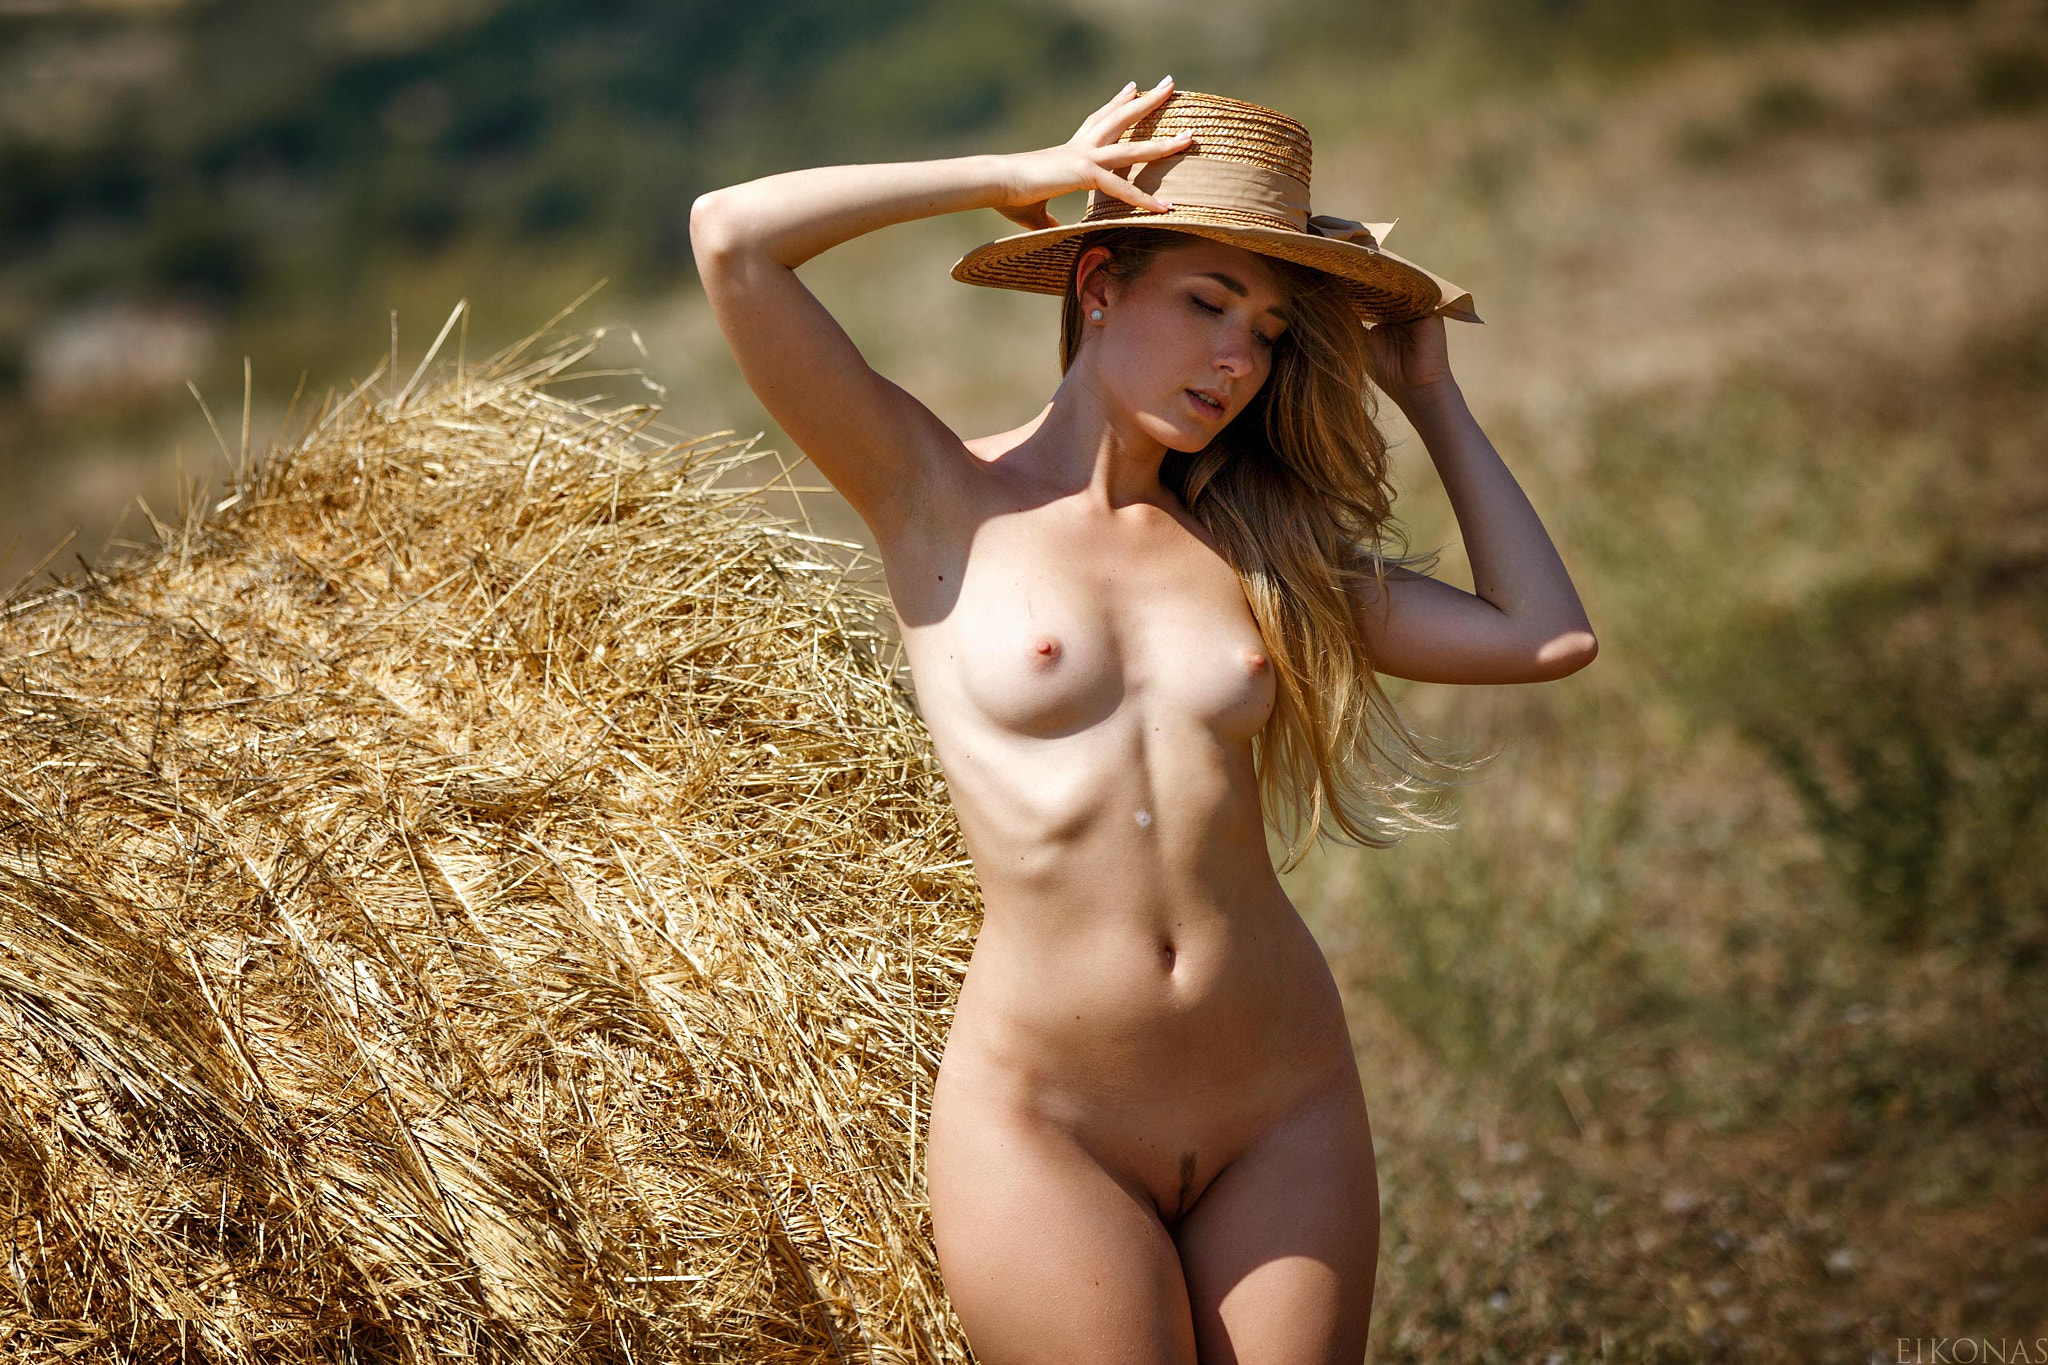 Chubby country girl showing boobs and pussy